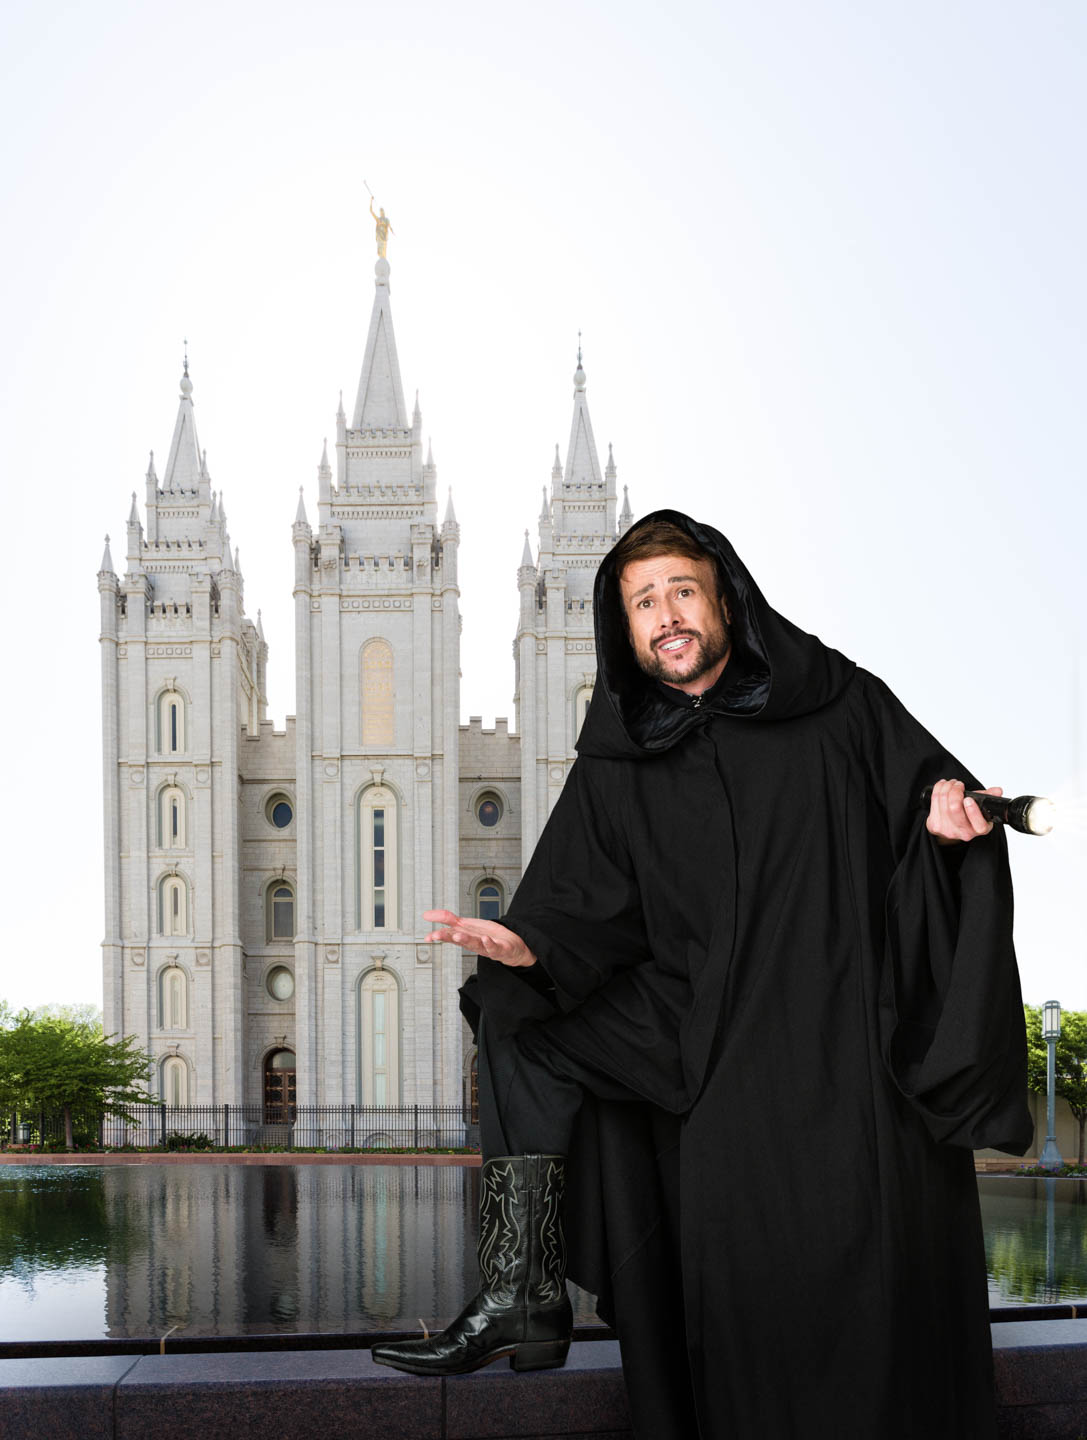 Steven looks for solace by the Salt Lake Temple